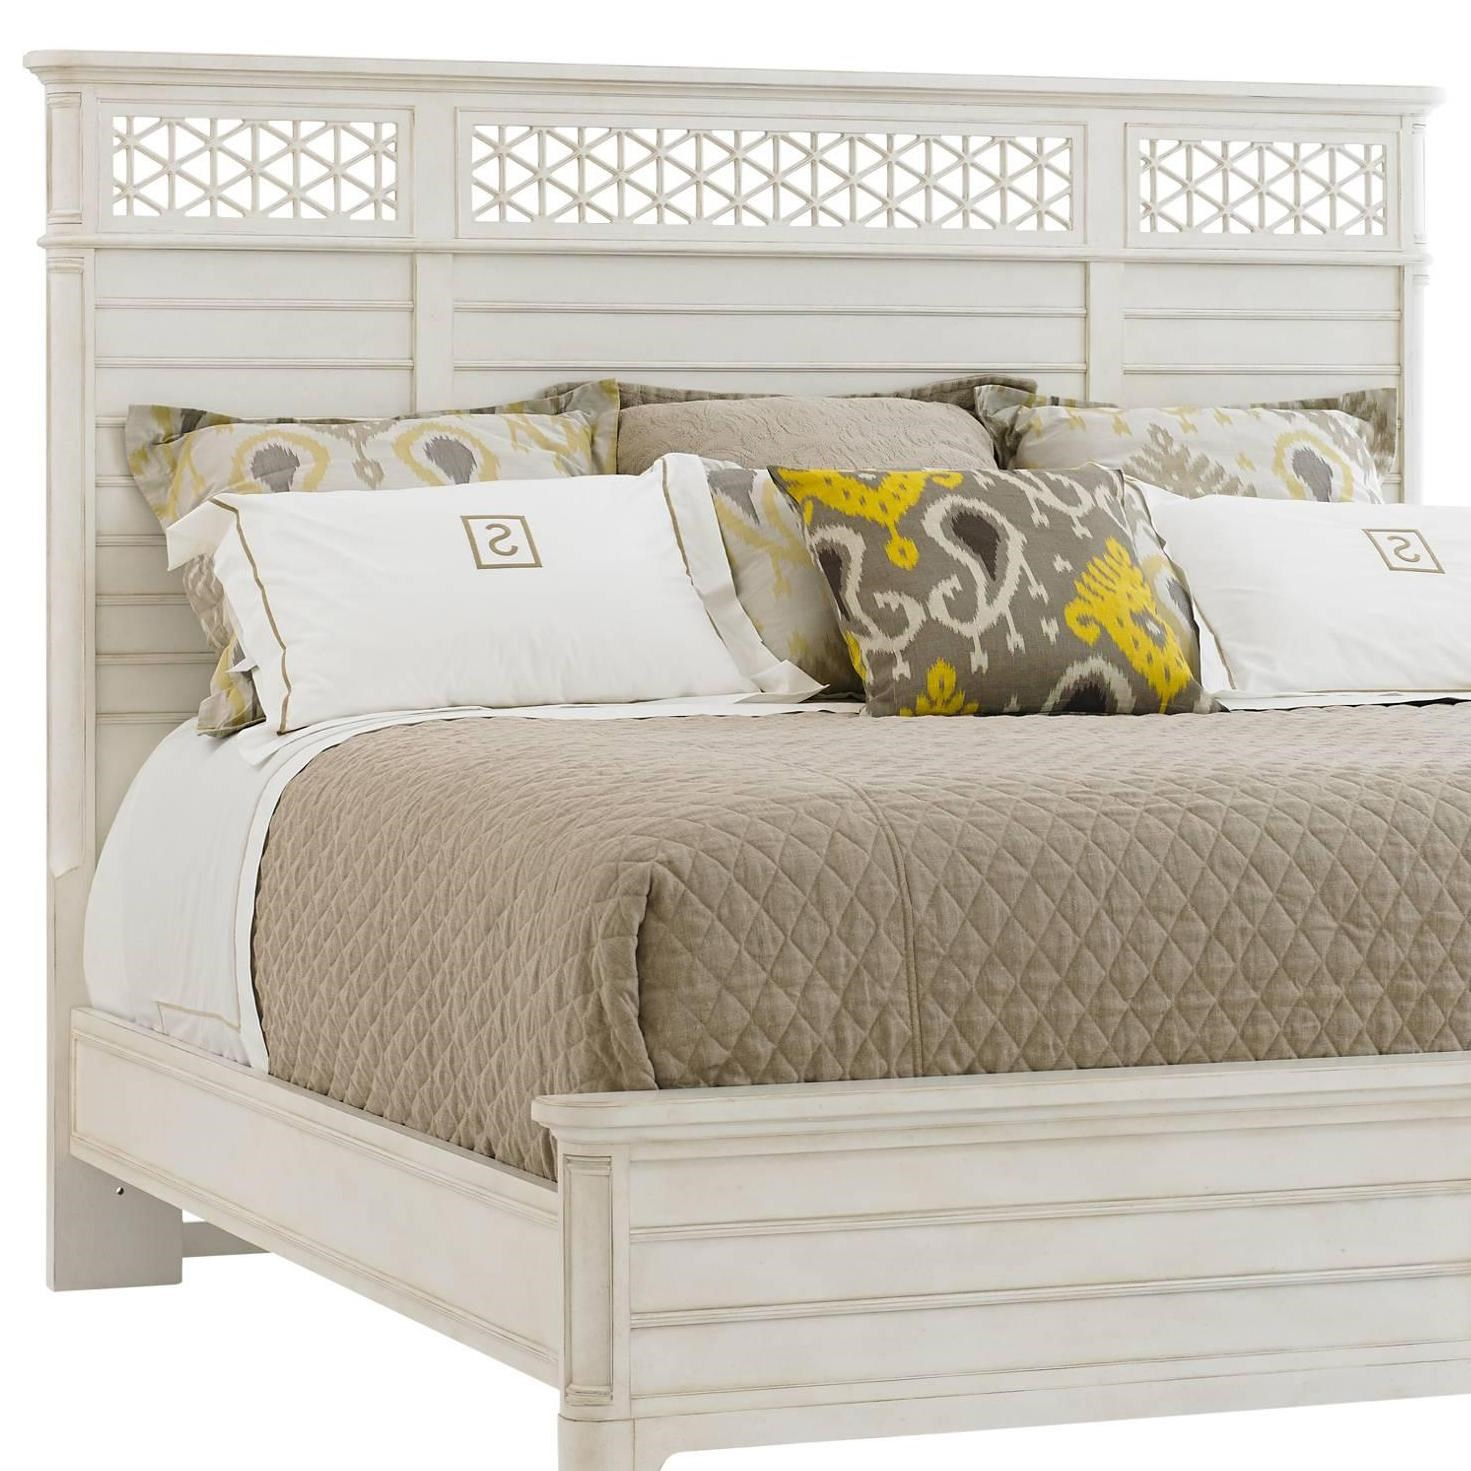 stanley furniture cypress grove cottage style queen wood panel, Headboard designs